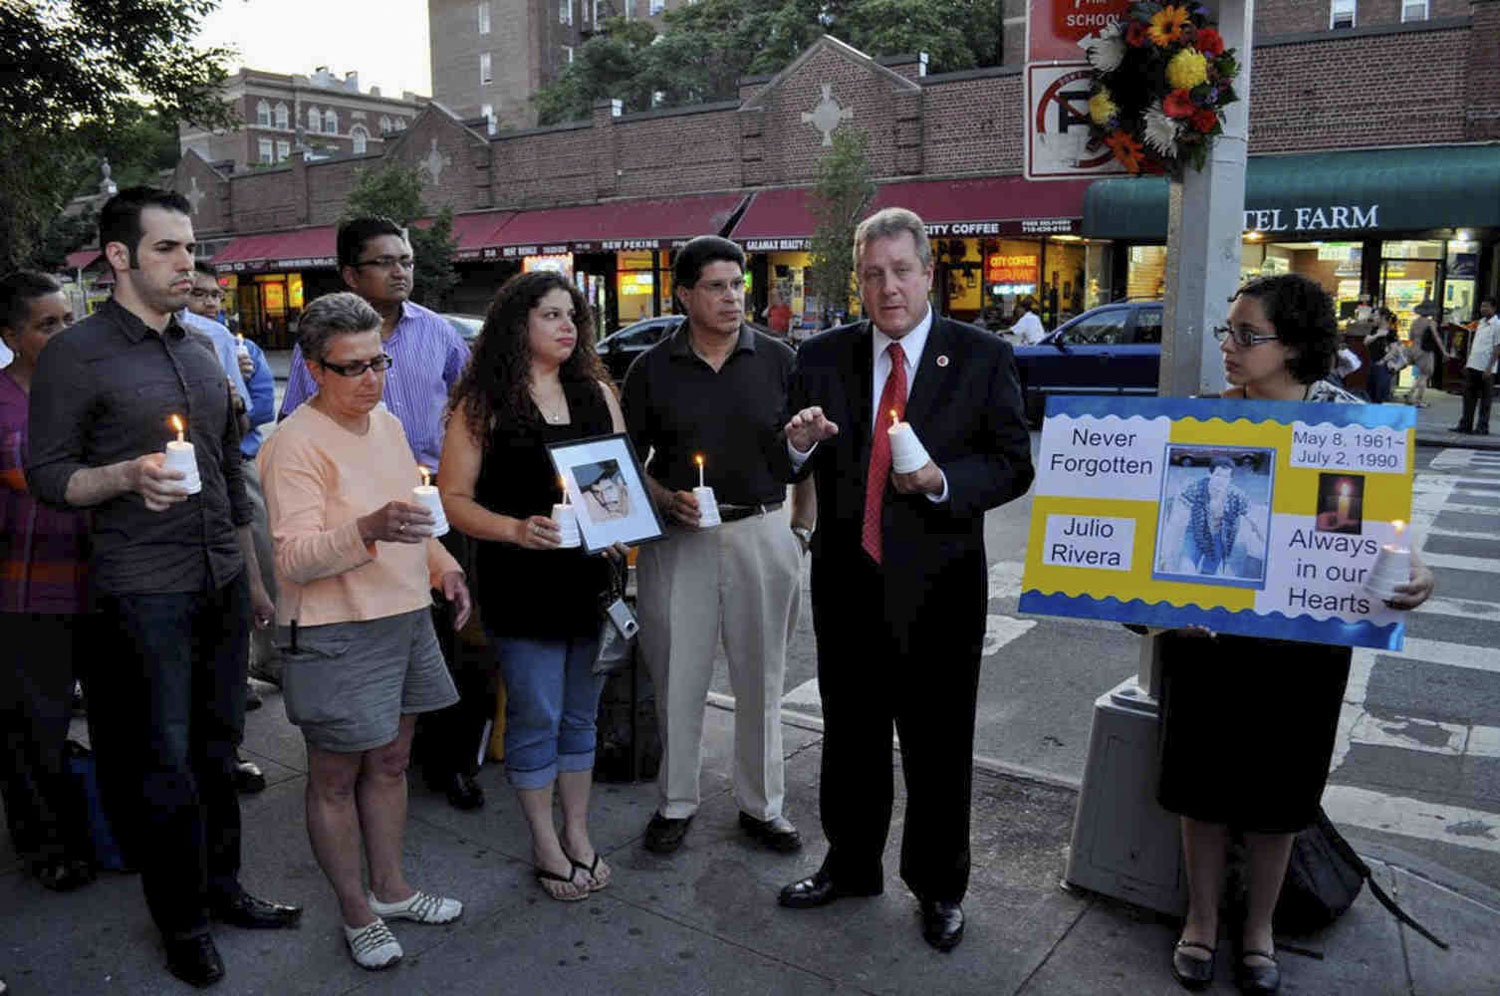 Julio Rivera's friends and family gathered with City Council Member Daniel Dromm on the 20th anniversary of his murder in July 2010.